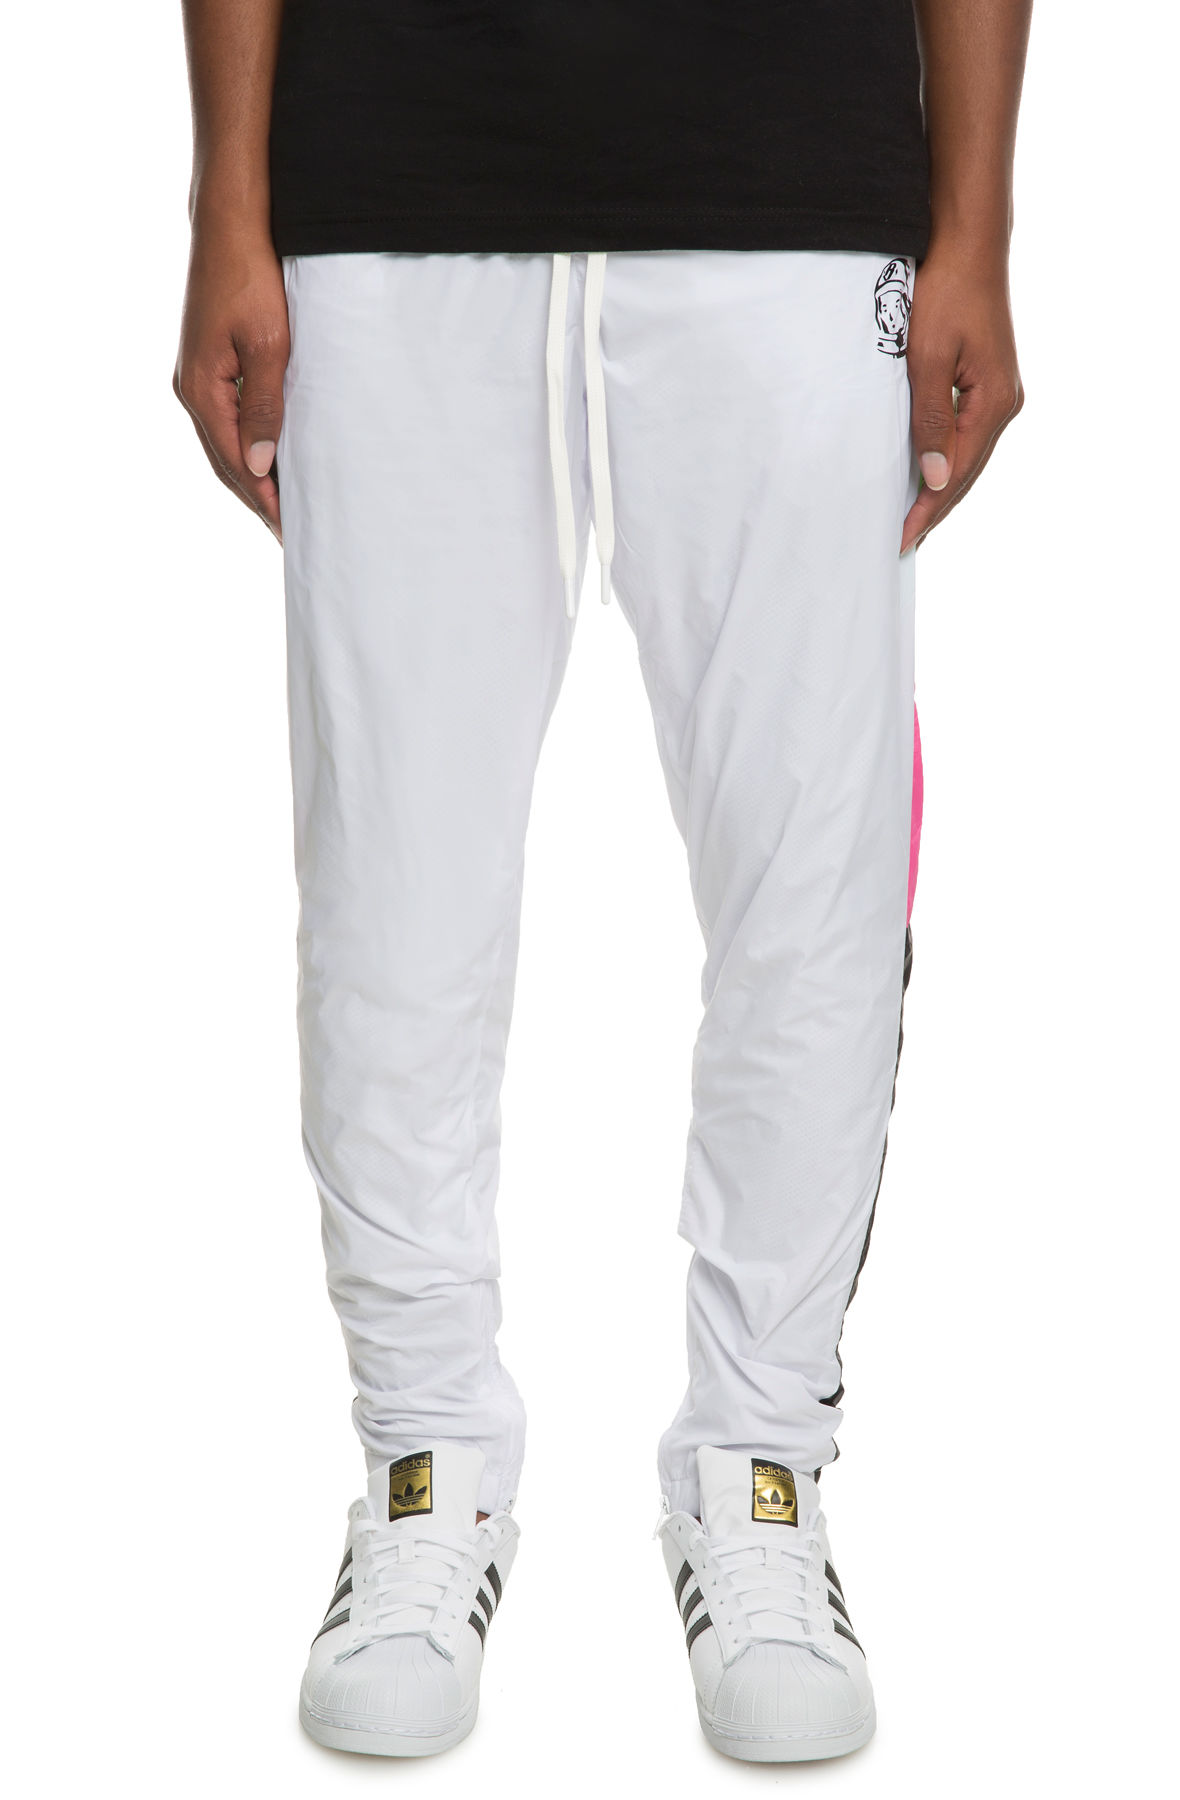 Image of The Breaks Pant in White